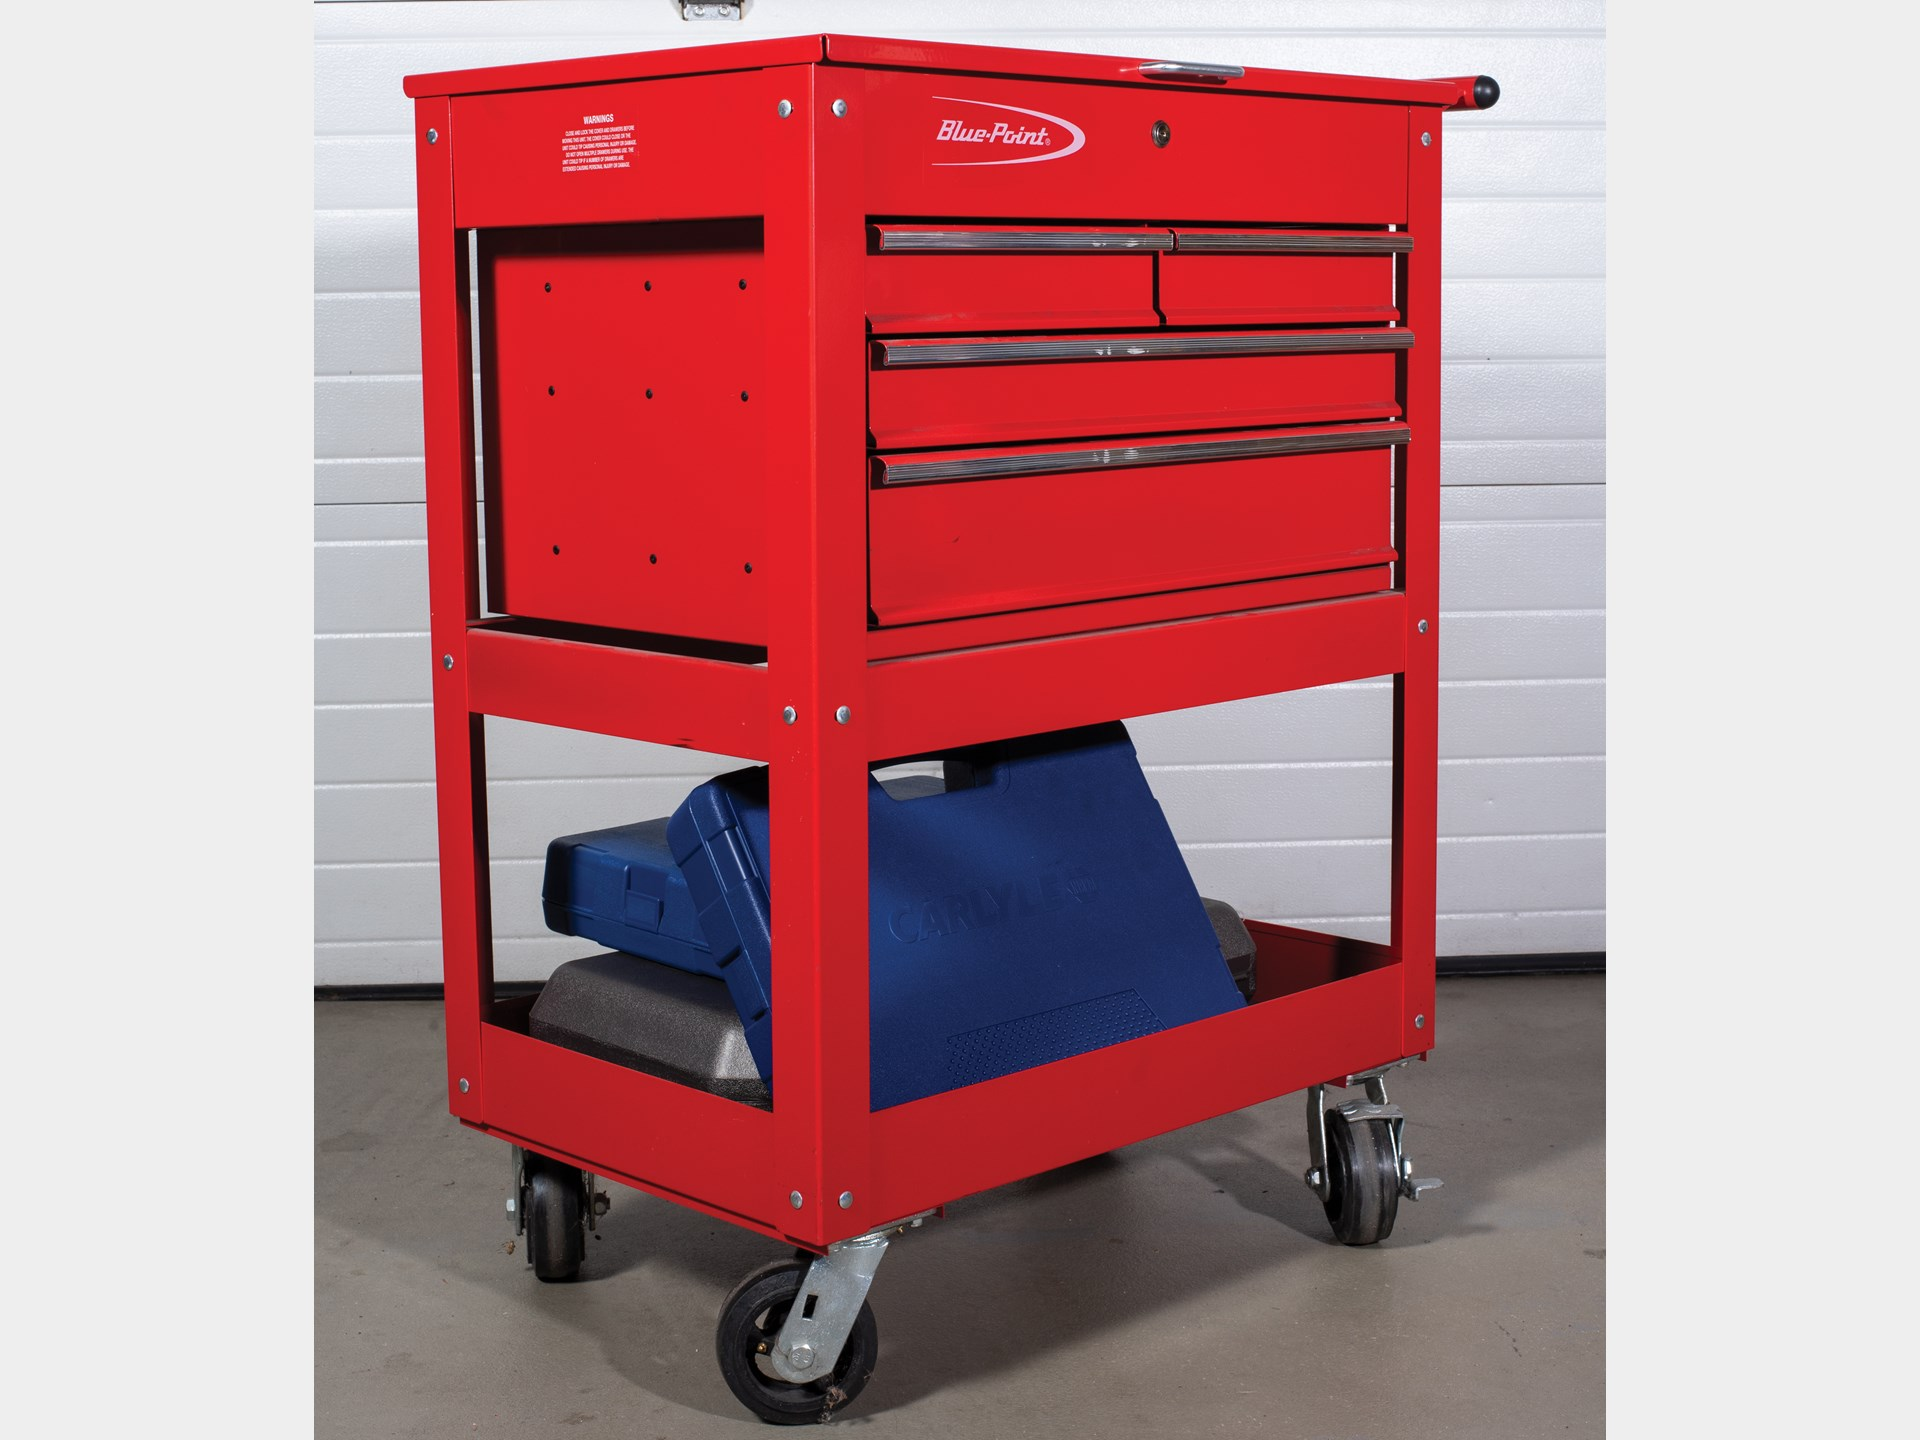 Blue Point Tool Cart >> Rm Sotheby S Blue Point Tool Cart With Assorted Equipment The